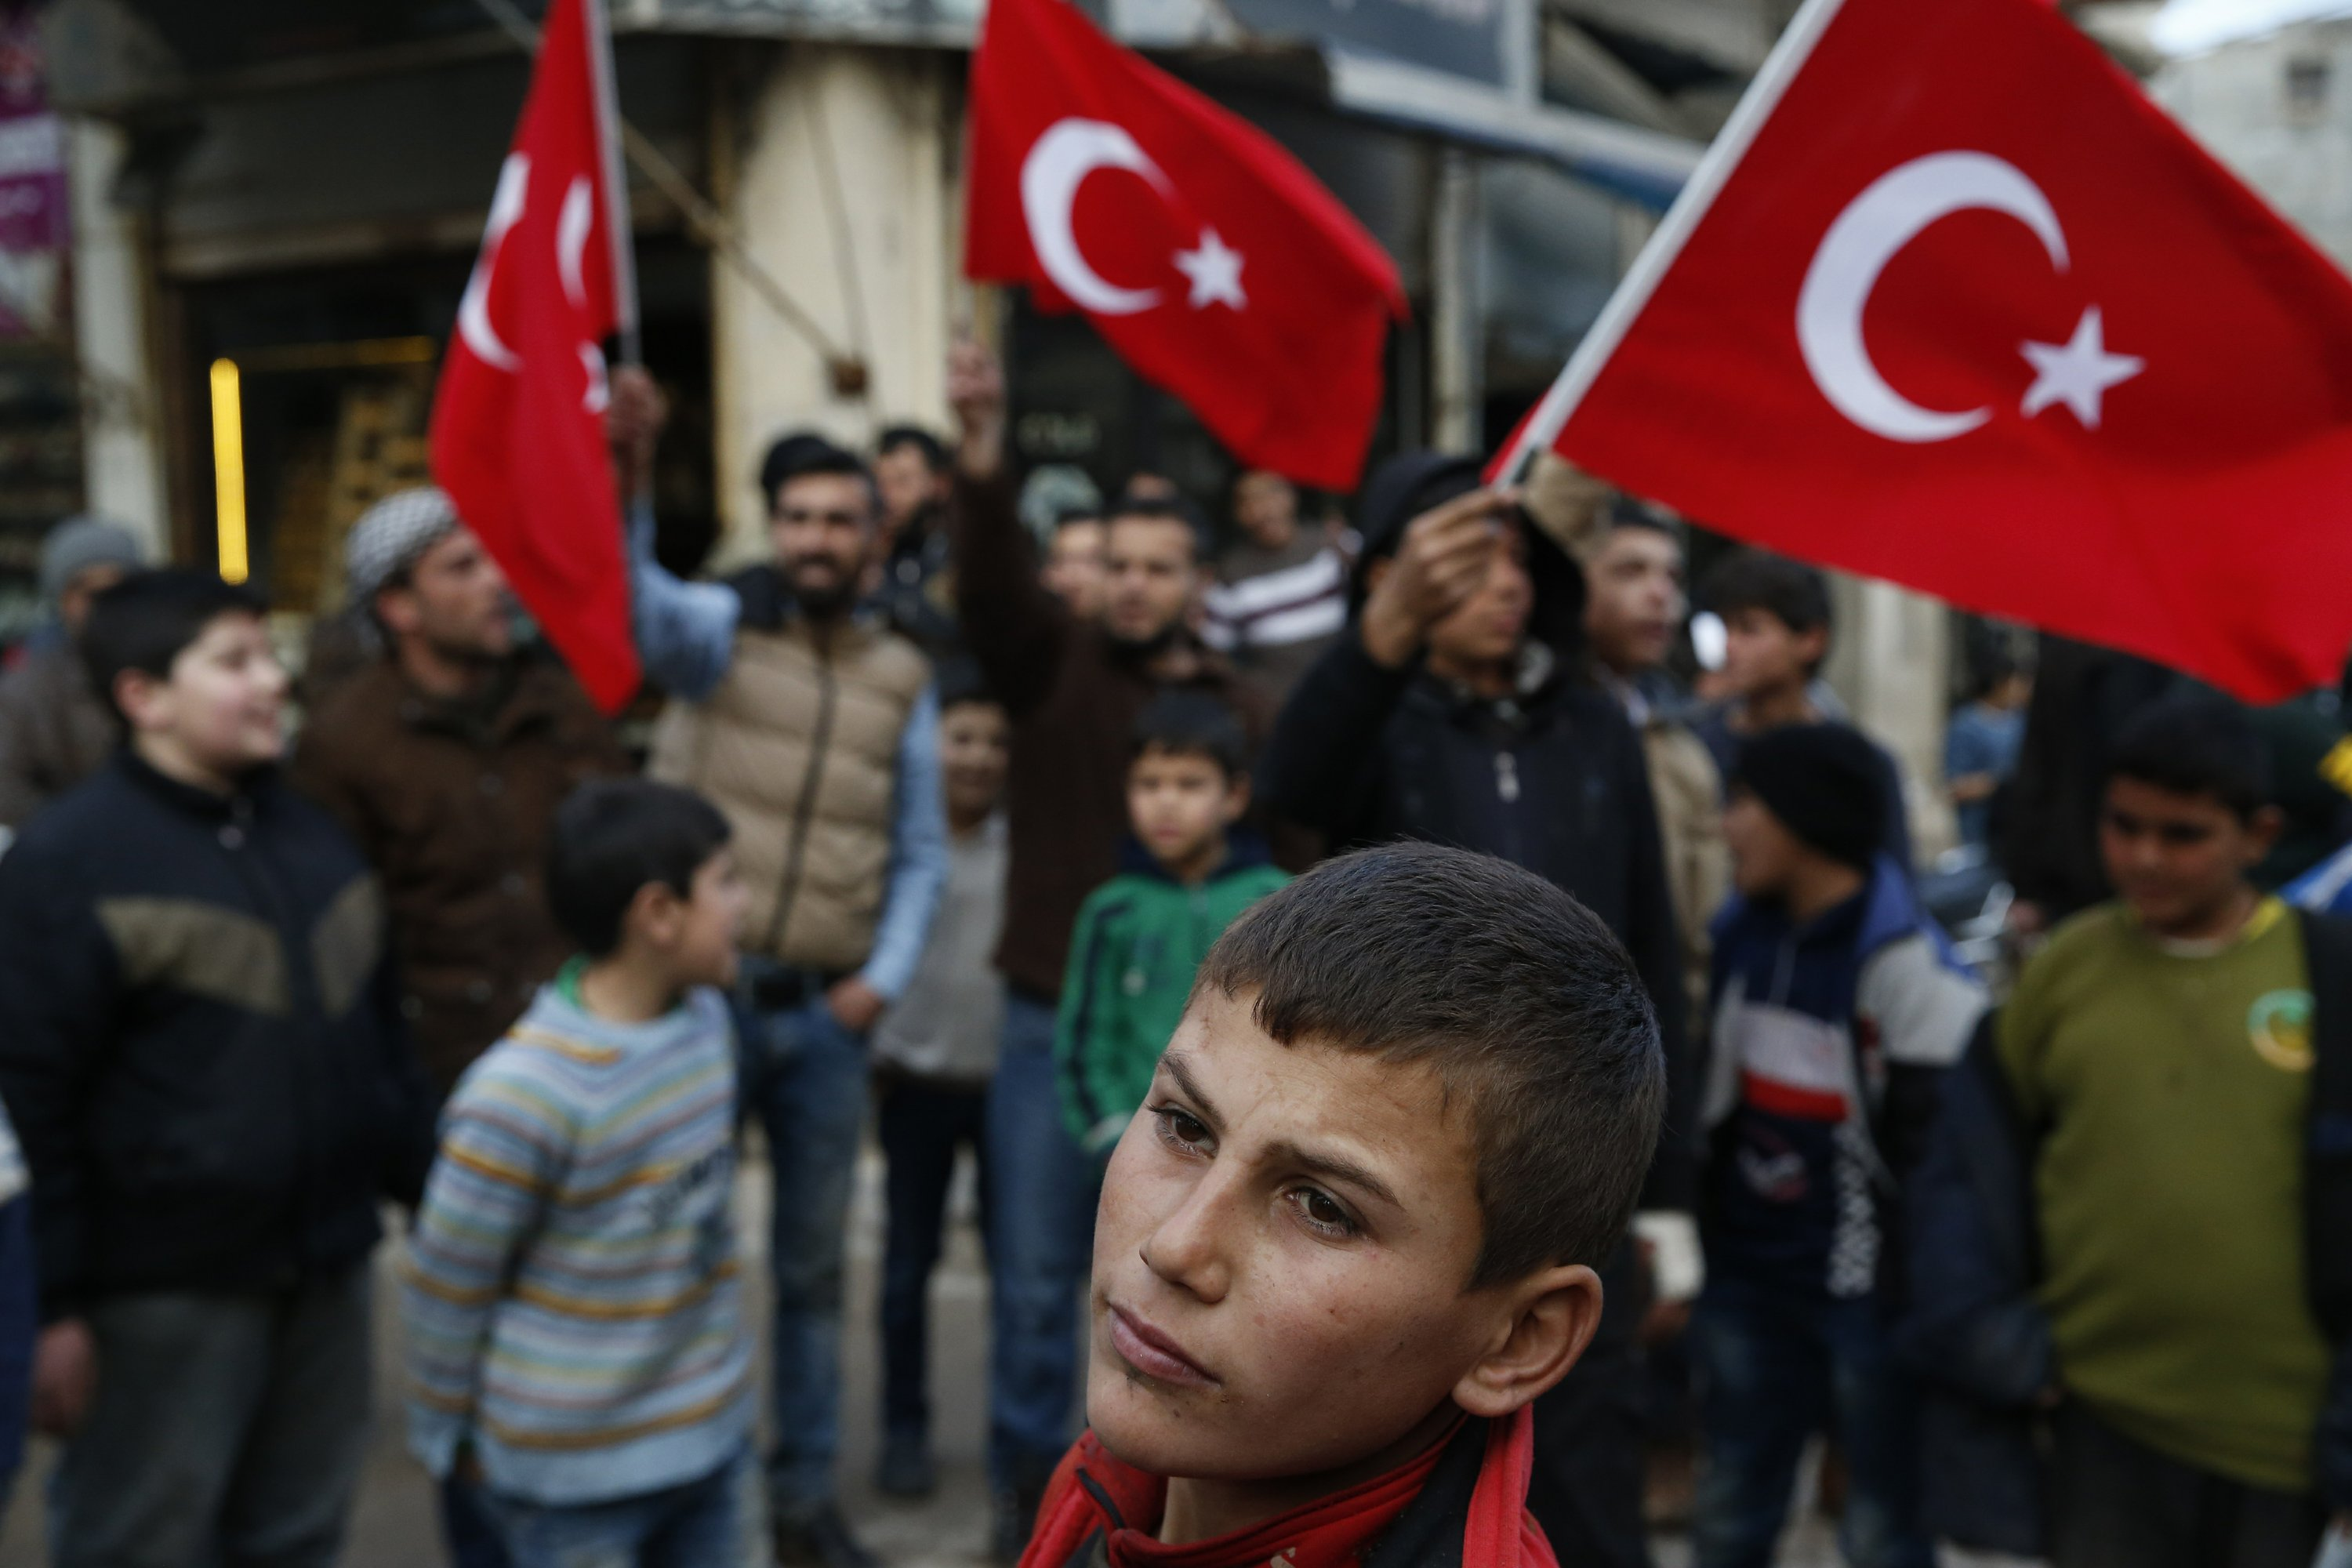 Blurring the border, Turkey deepens roots in northern Syria